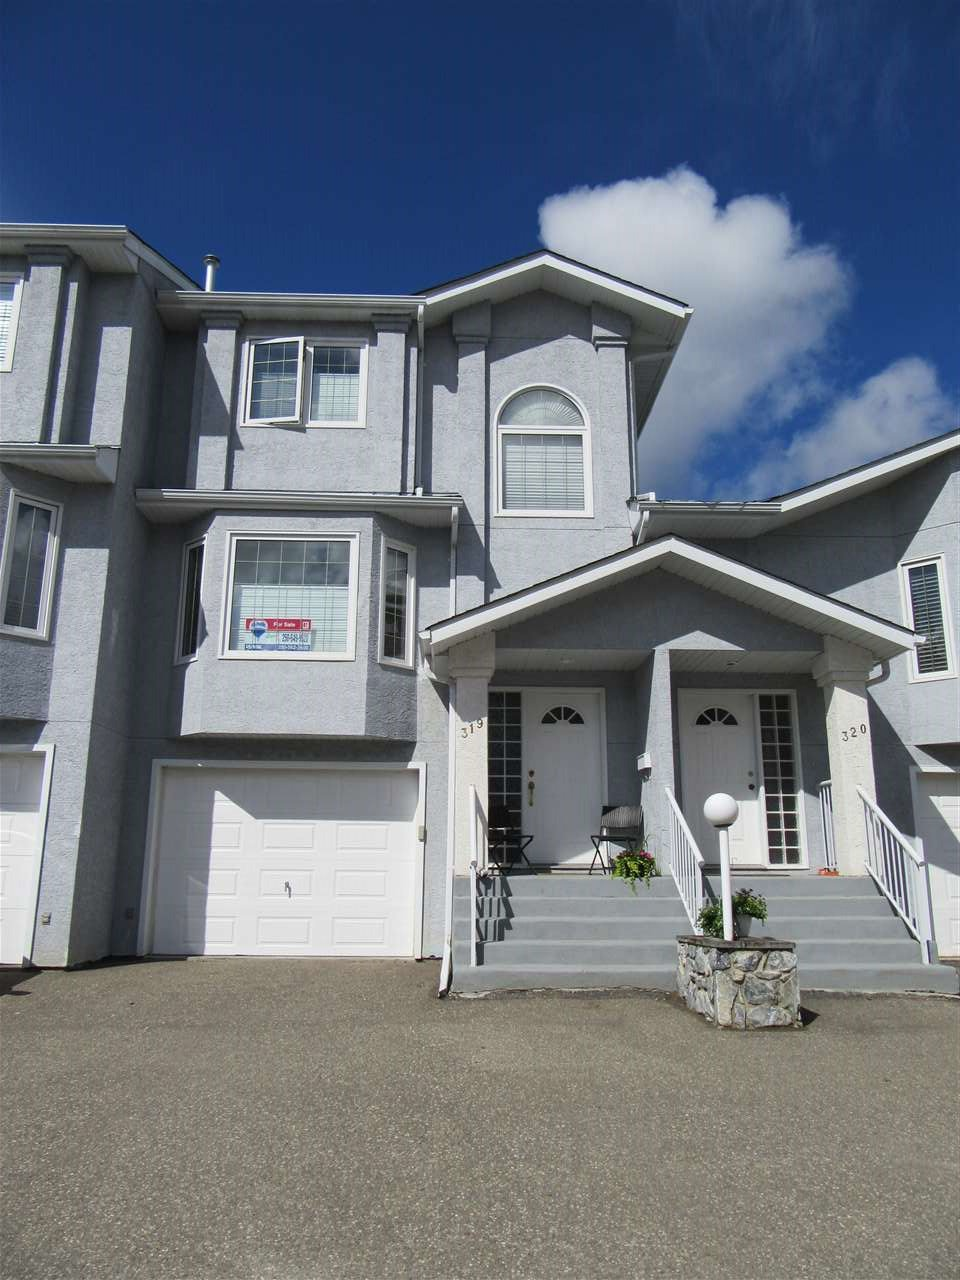 """Main Photo: 319 6450 DAWSON Road in Prince George: Valleyview Townhouse for sale in """"VALLEYVIEW"""" (PG City North (Zone 73))  : MLS®# R2456564"""